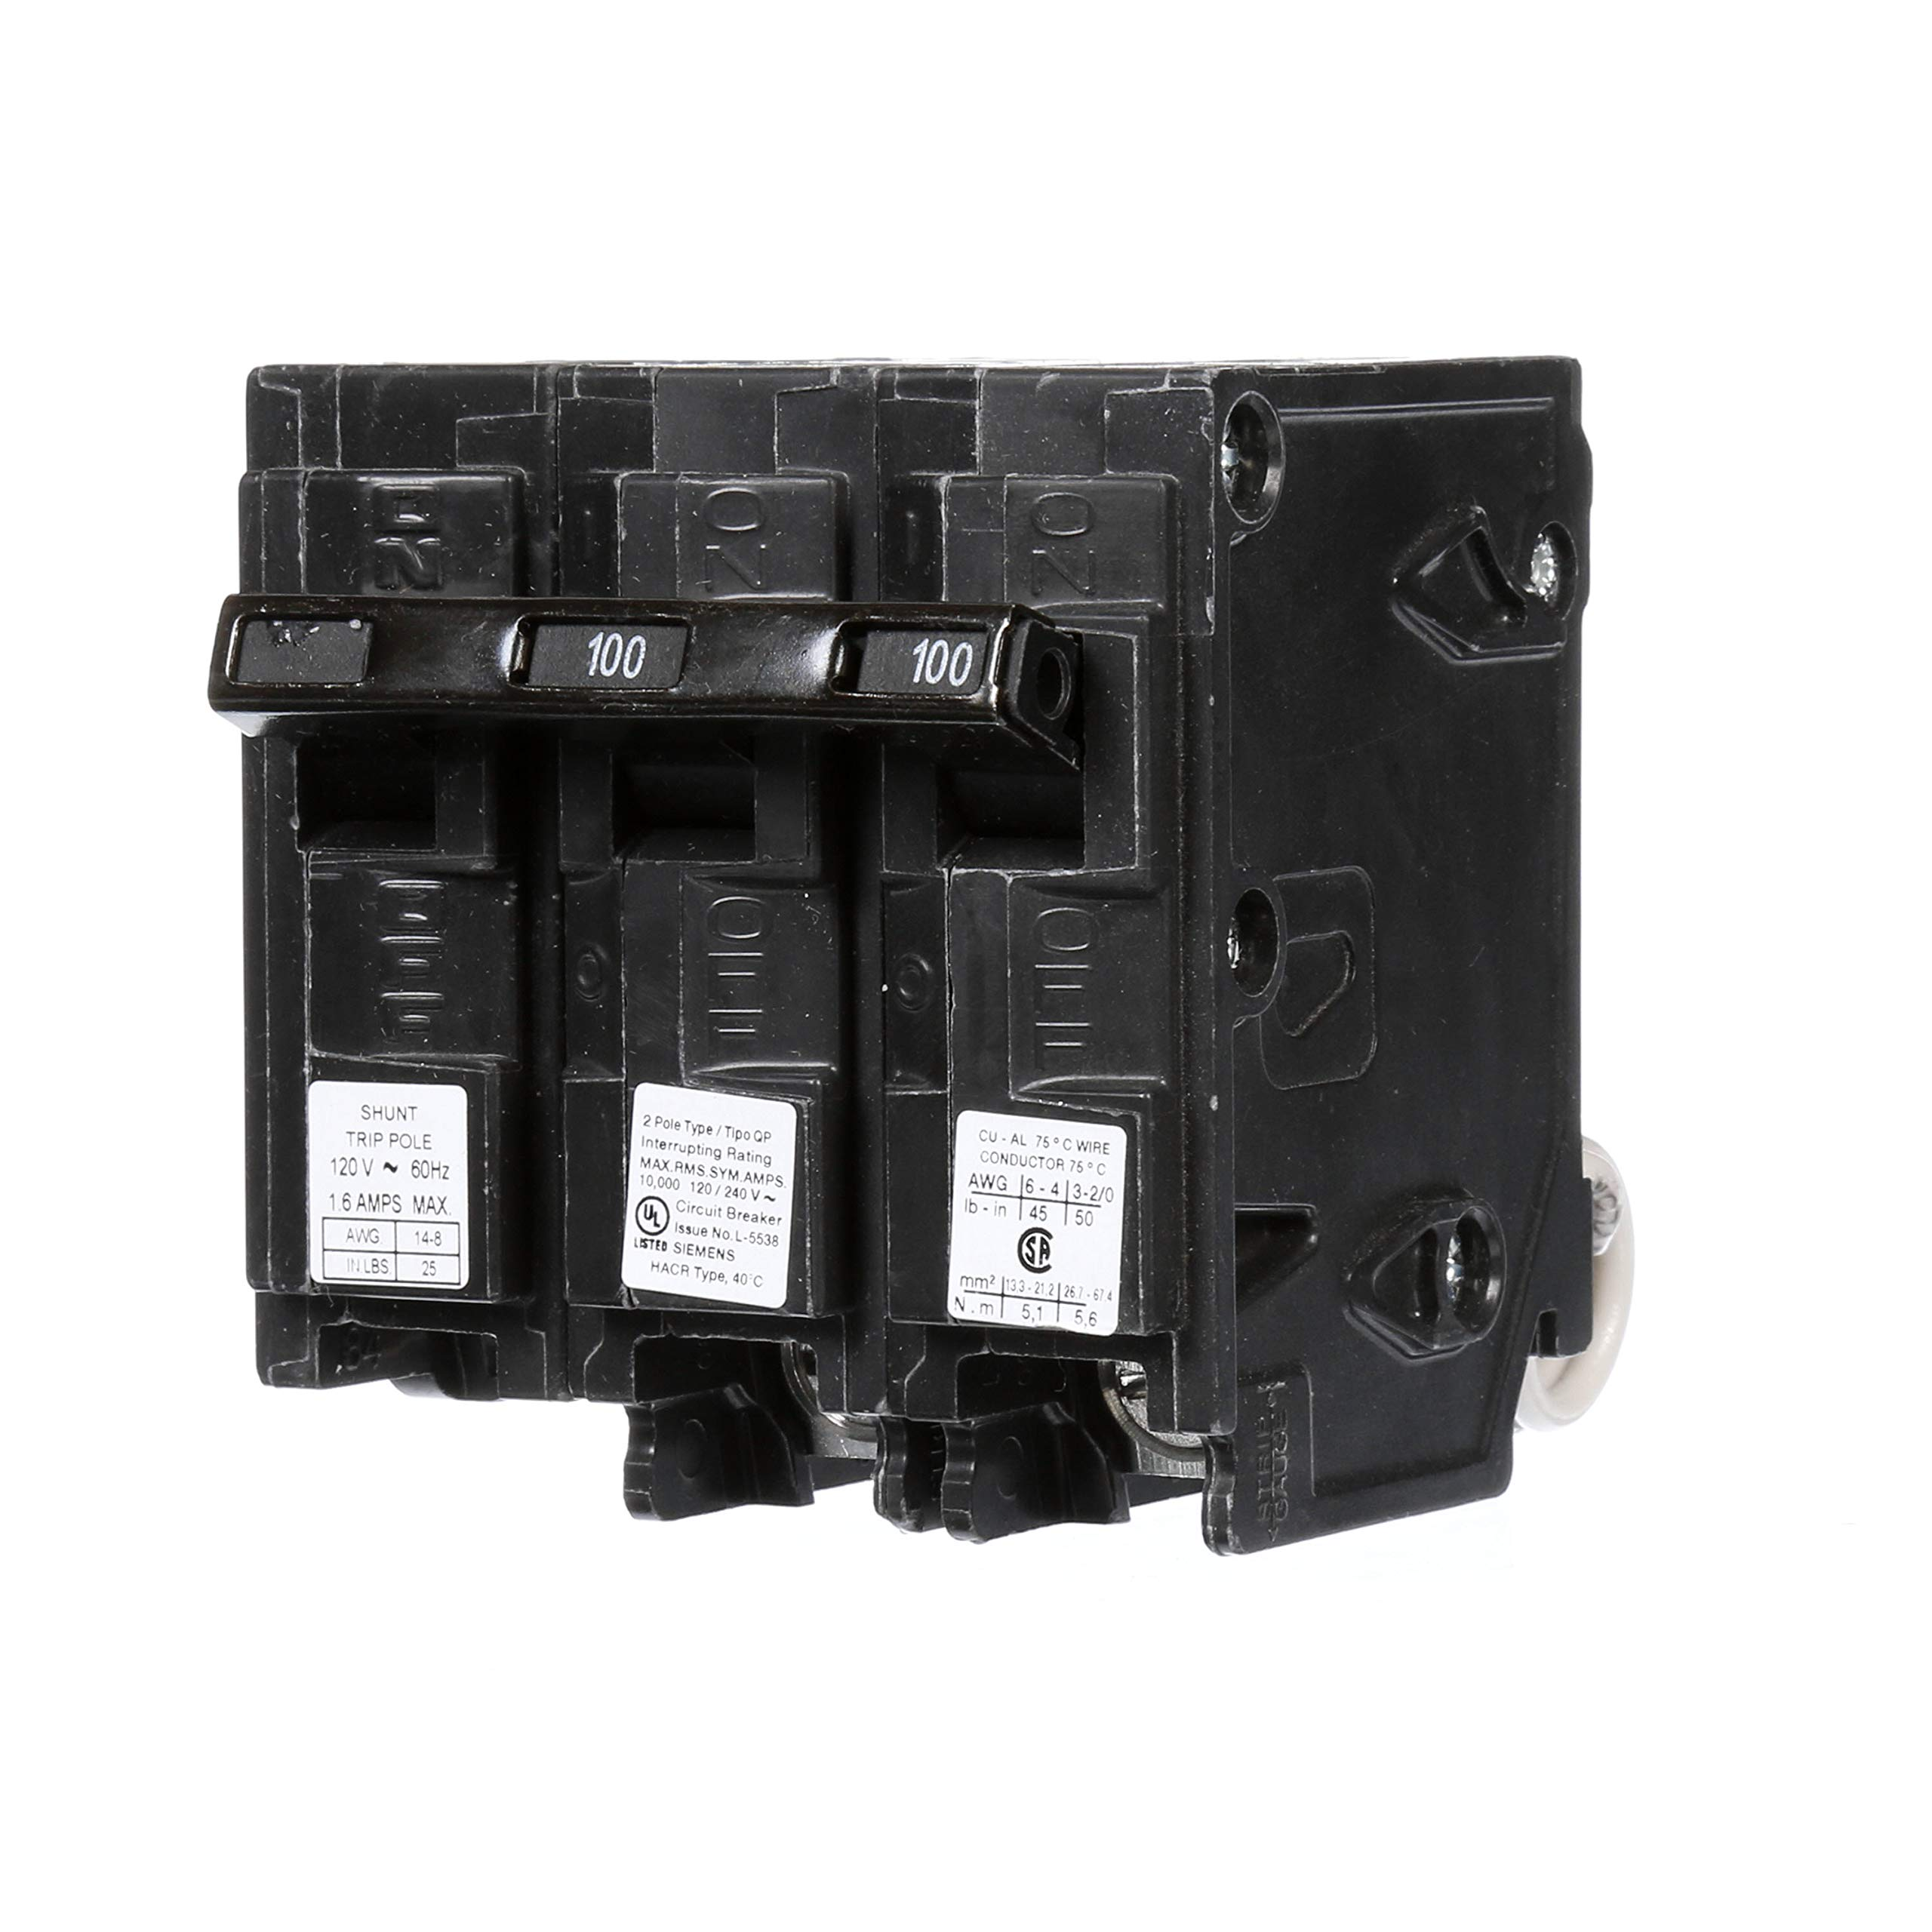 Siemens Q210000S01 120/240-Volt type MP-T 100-Amp Circuit Breaker with 120-Volt Shunt Trip Double pole